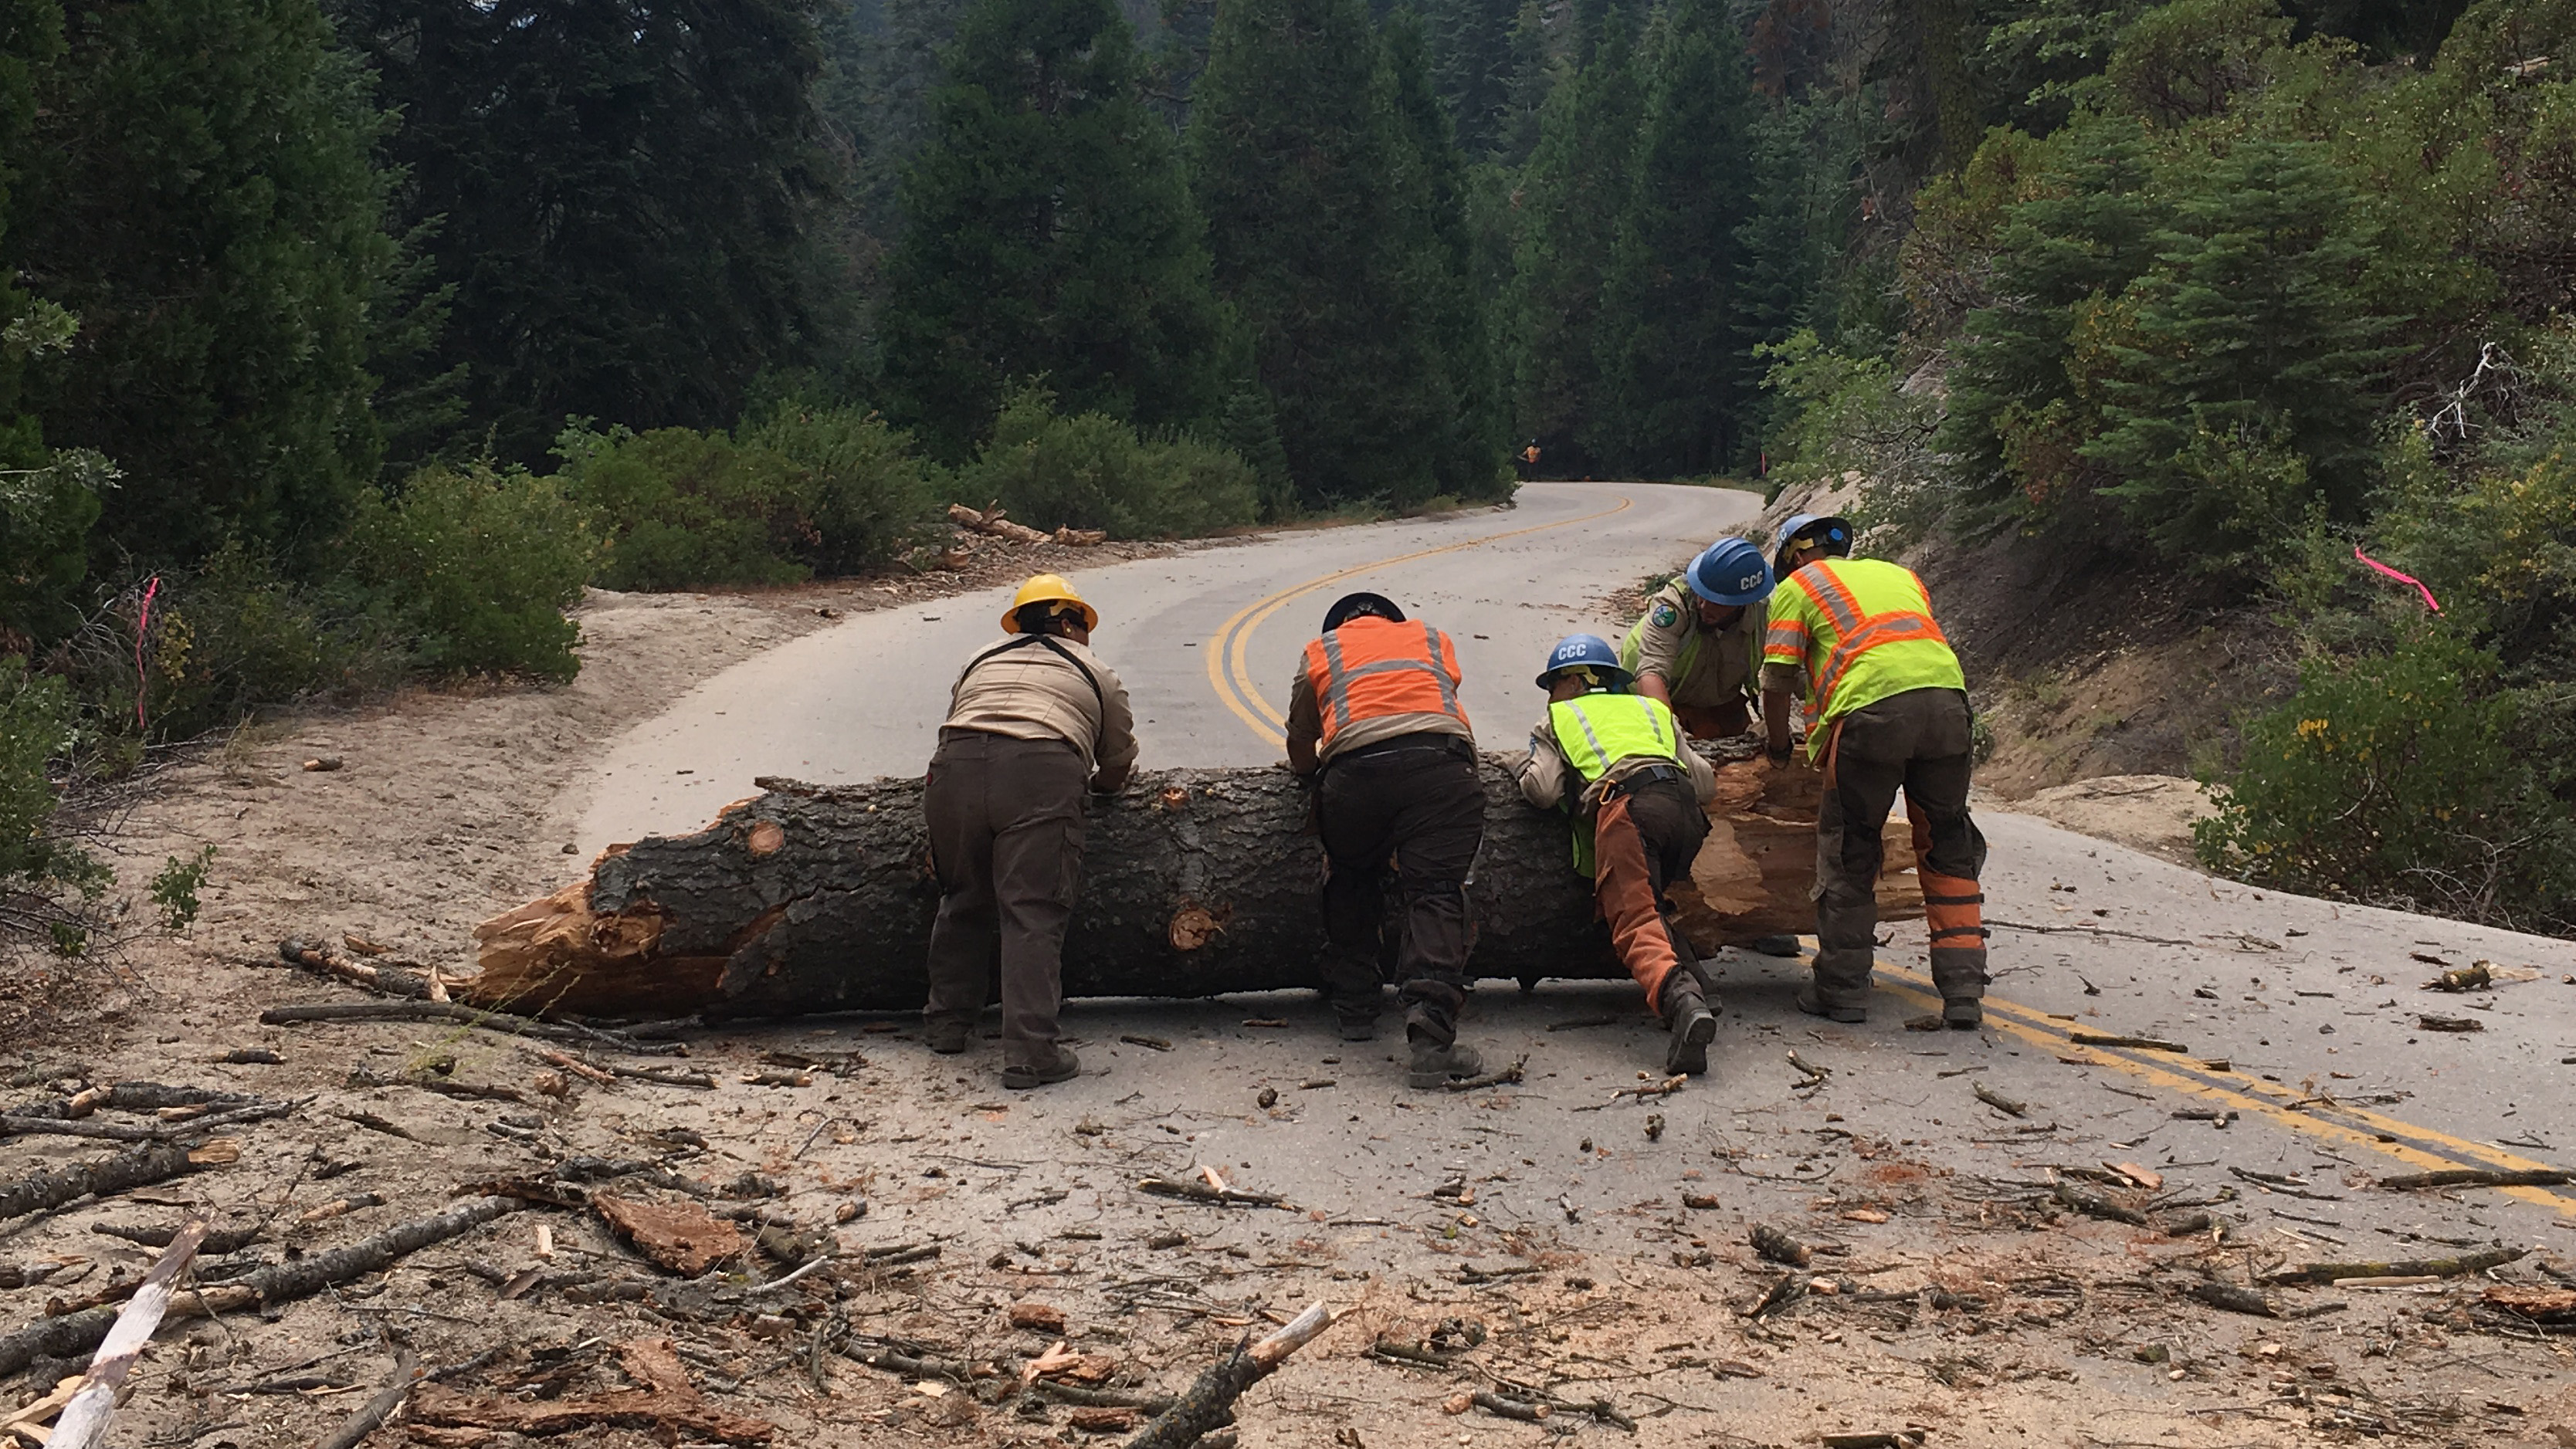 Image. Corpsmembers and supervisor push large tree trunk out of road after felling the tree.